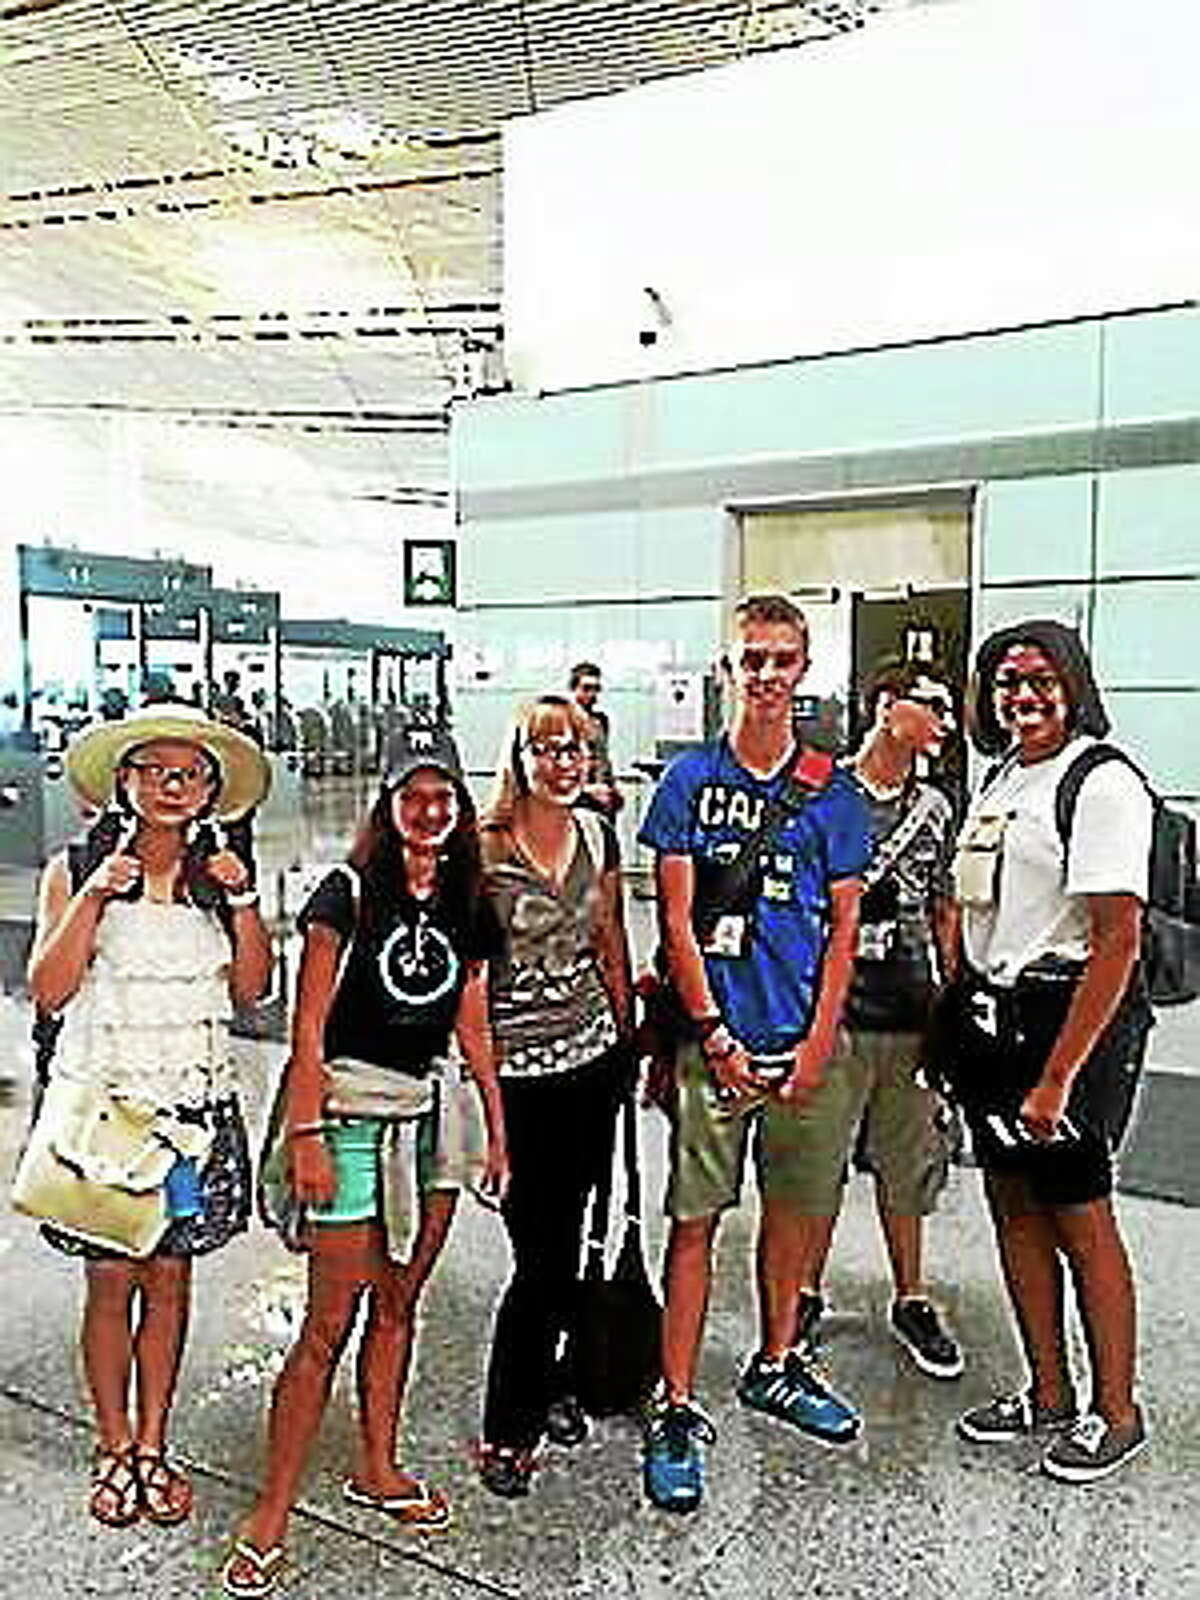 The students pose for photo as they arrive in China.